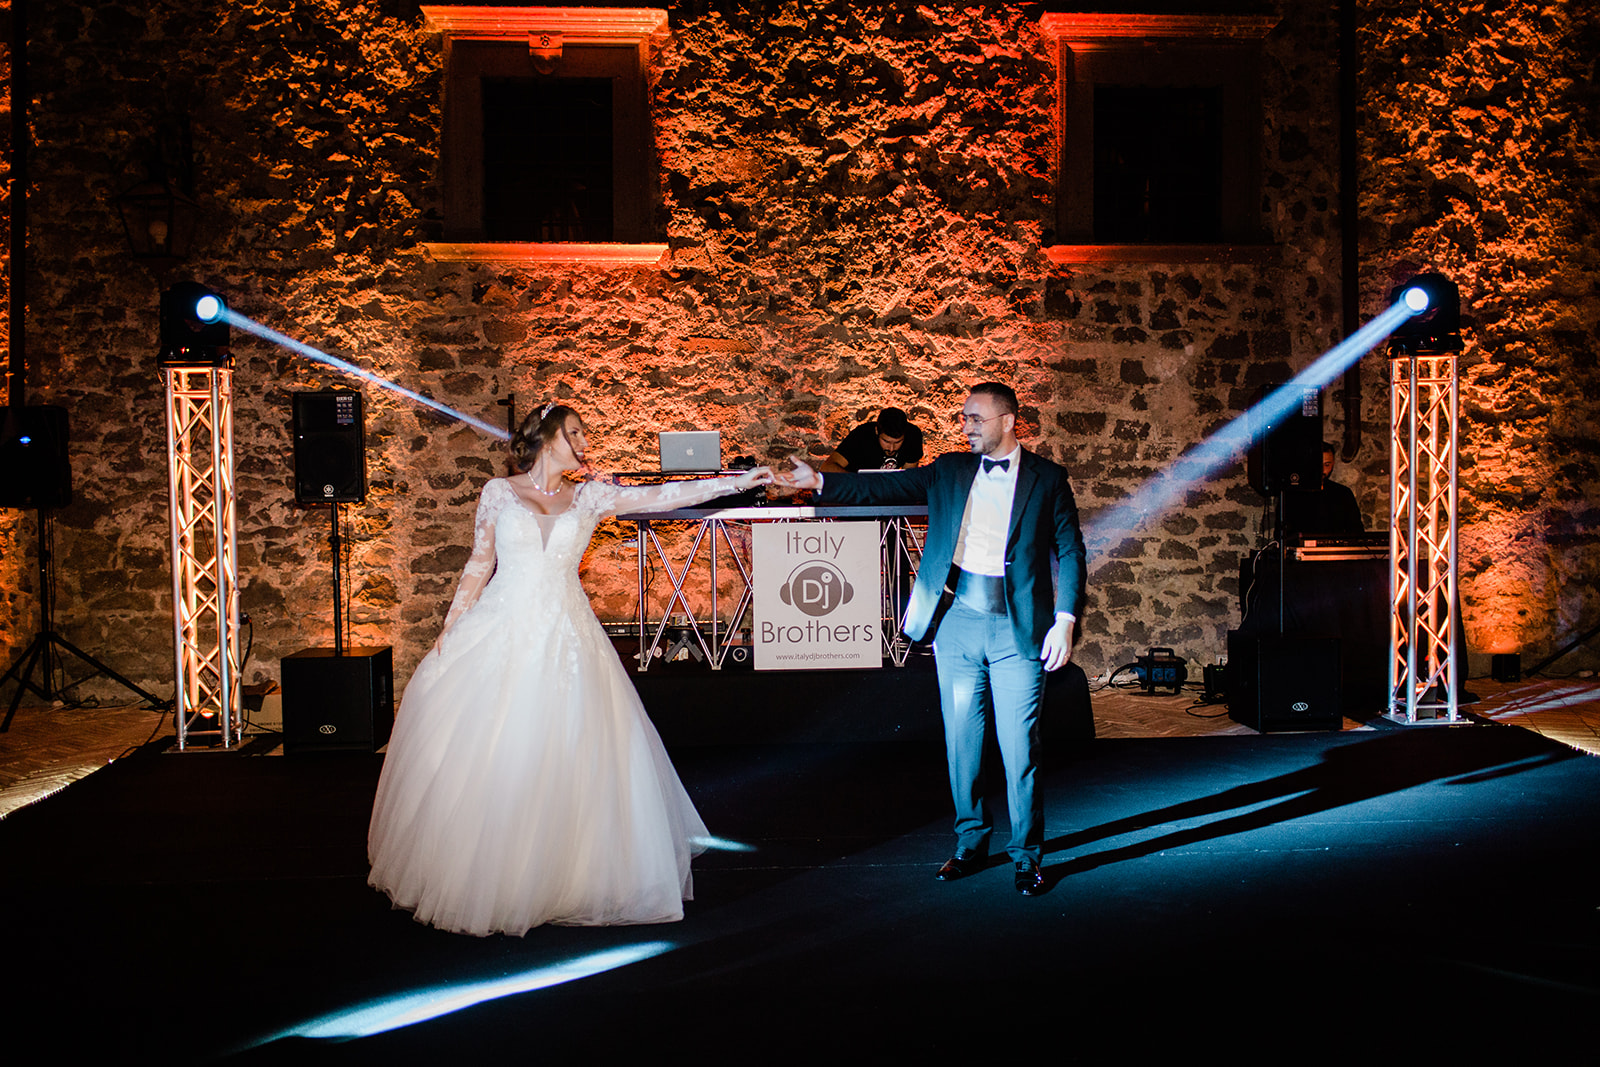 wedding-services-in-italy